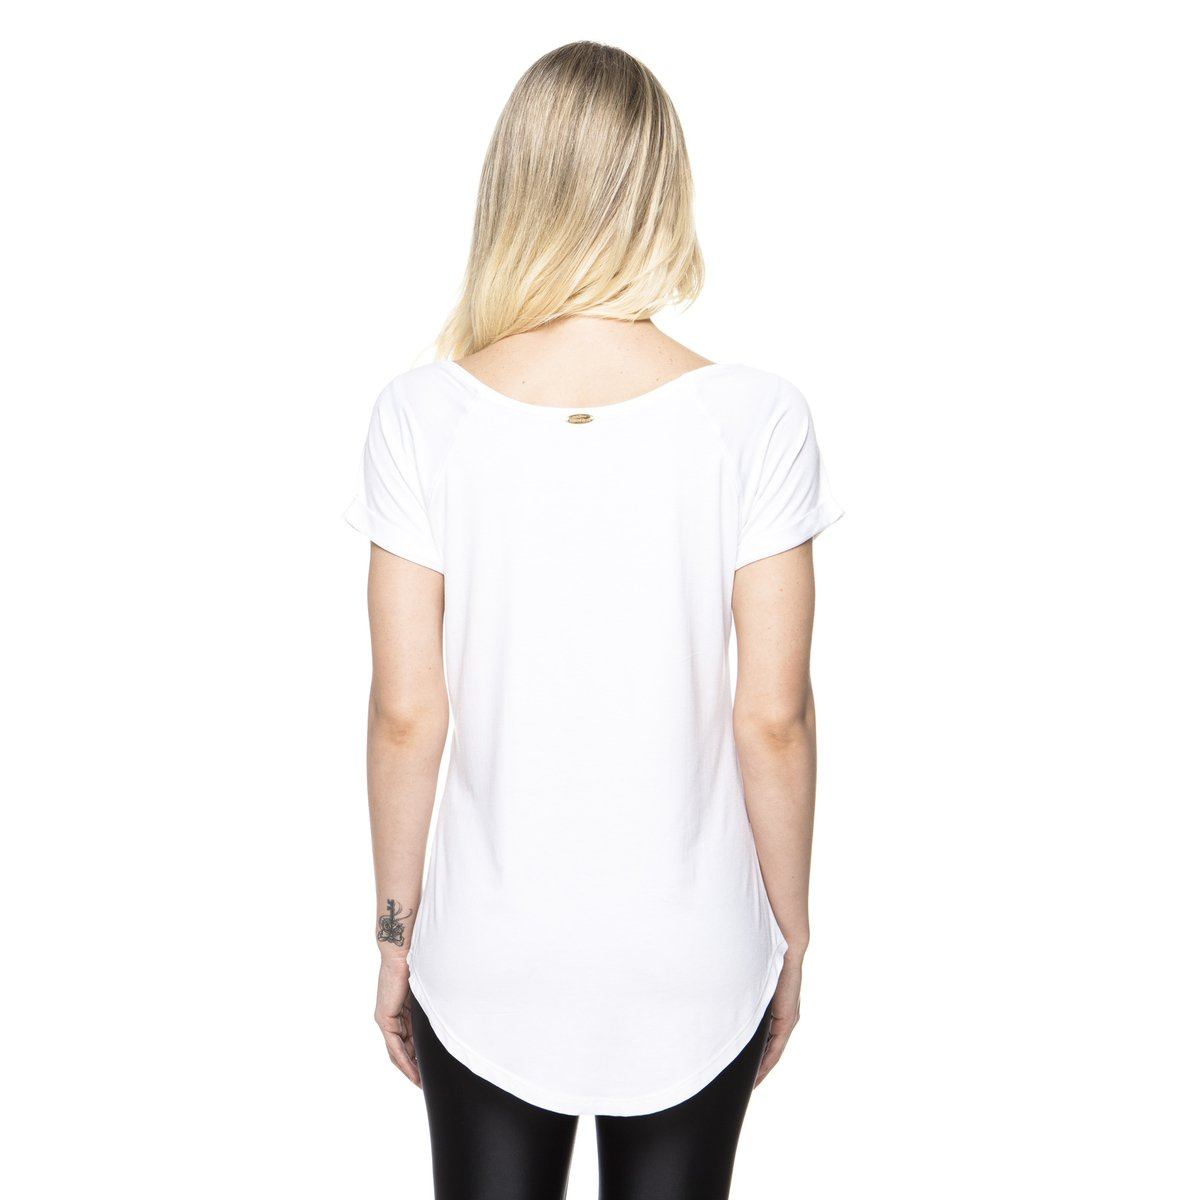 New Pocket Up Camiseta Branco Branco Vis Pocket Camiseta Up Camiseta New Vis wOIRnFqx